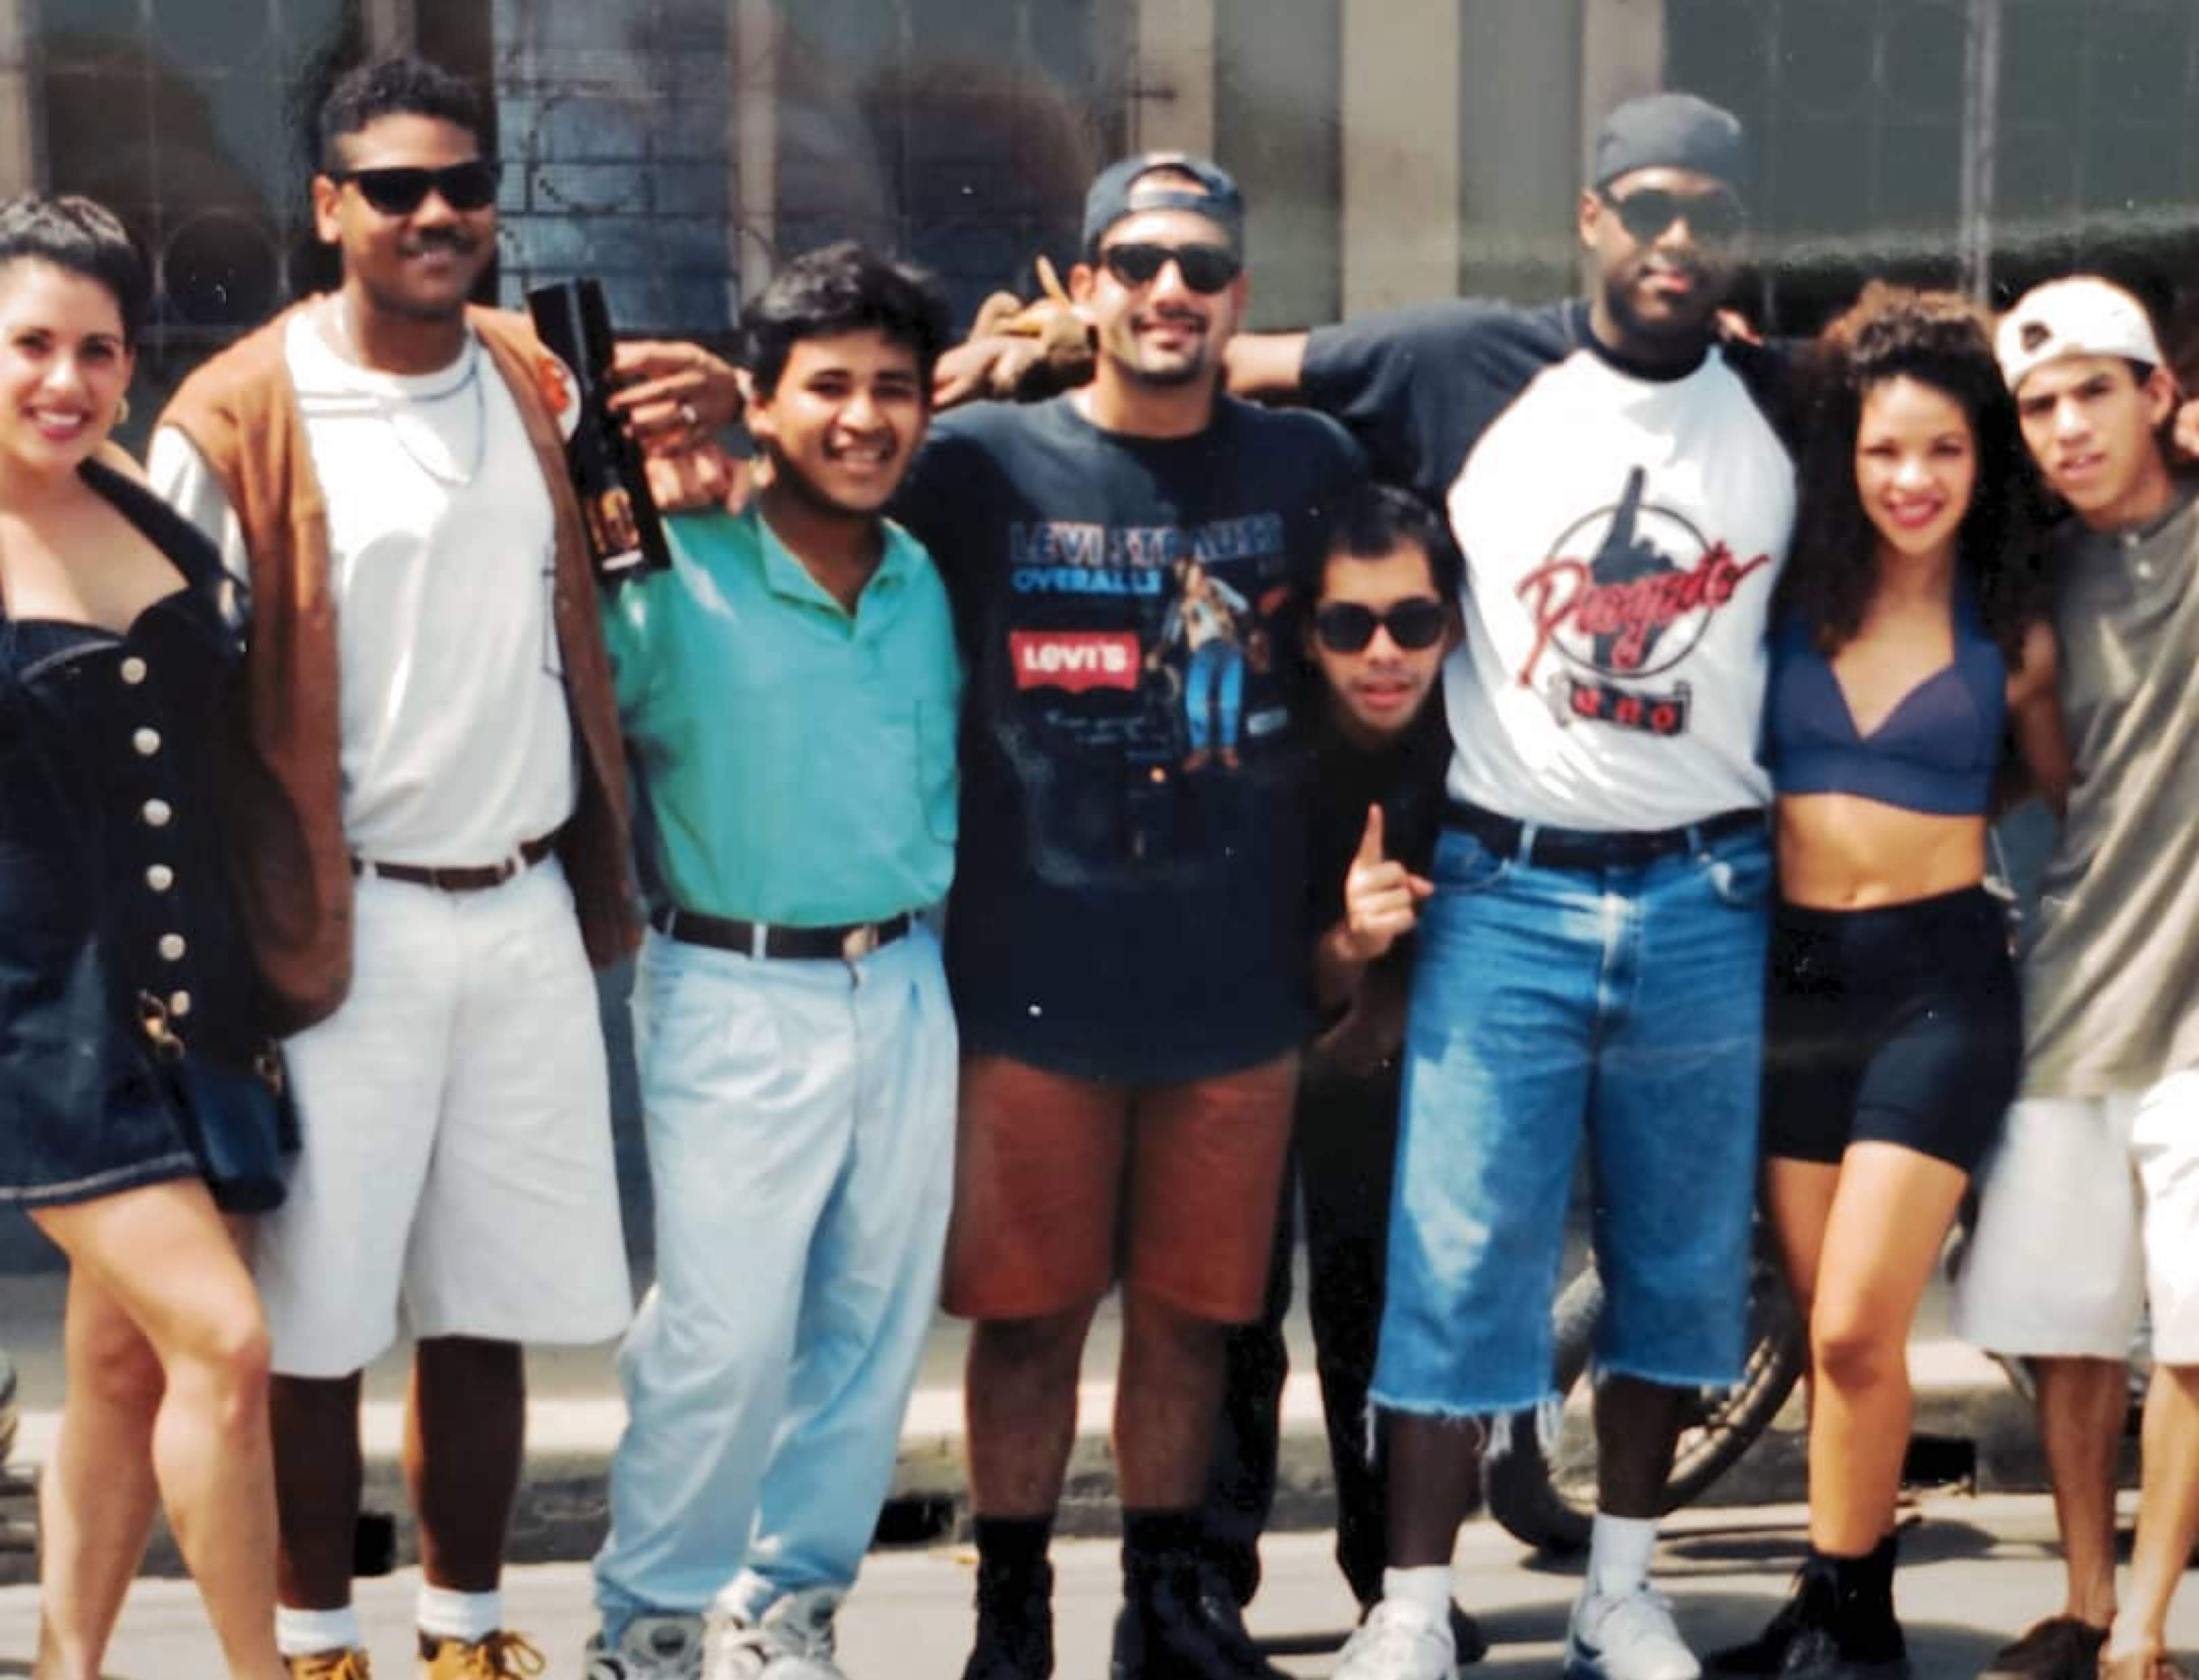 Proyecto Uno with team members, including Porfirio Piña, co-founder/manager, and unidentified fan, Venezuela, 1994